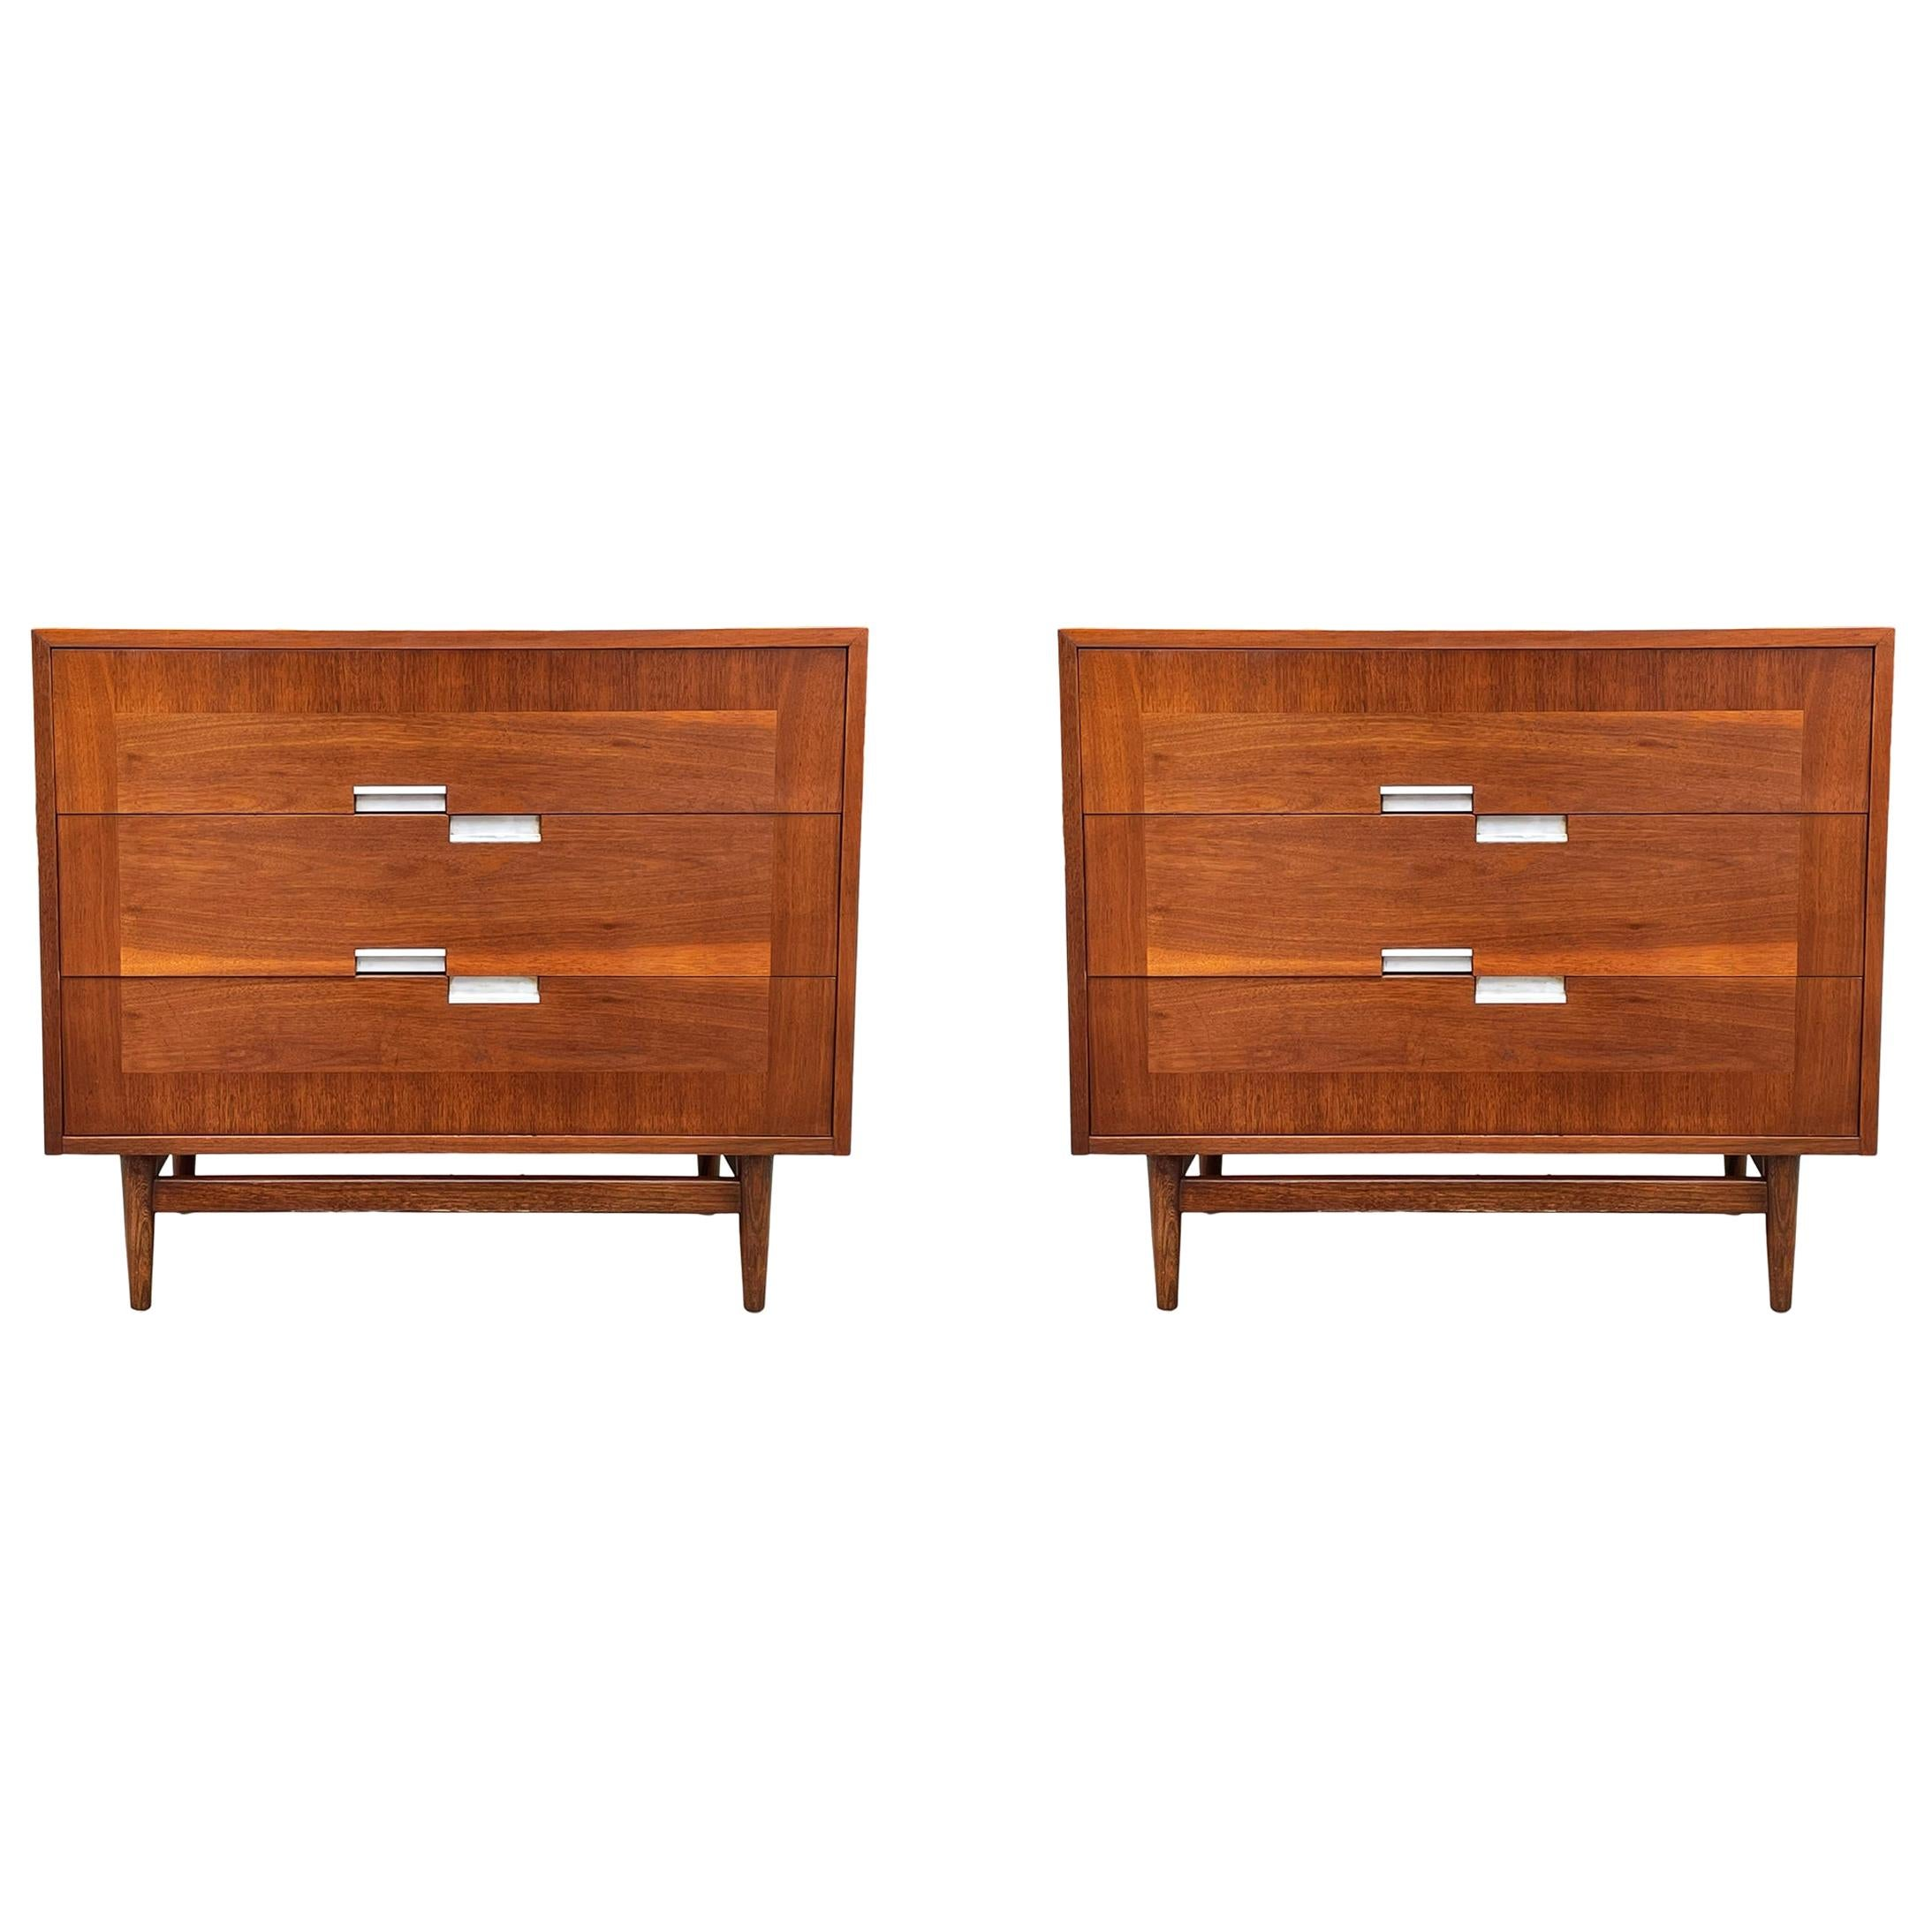 Mid-Century Modern Matching Pair of Chests, Commodes or Large Night Stands